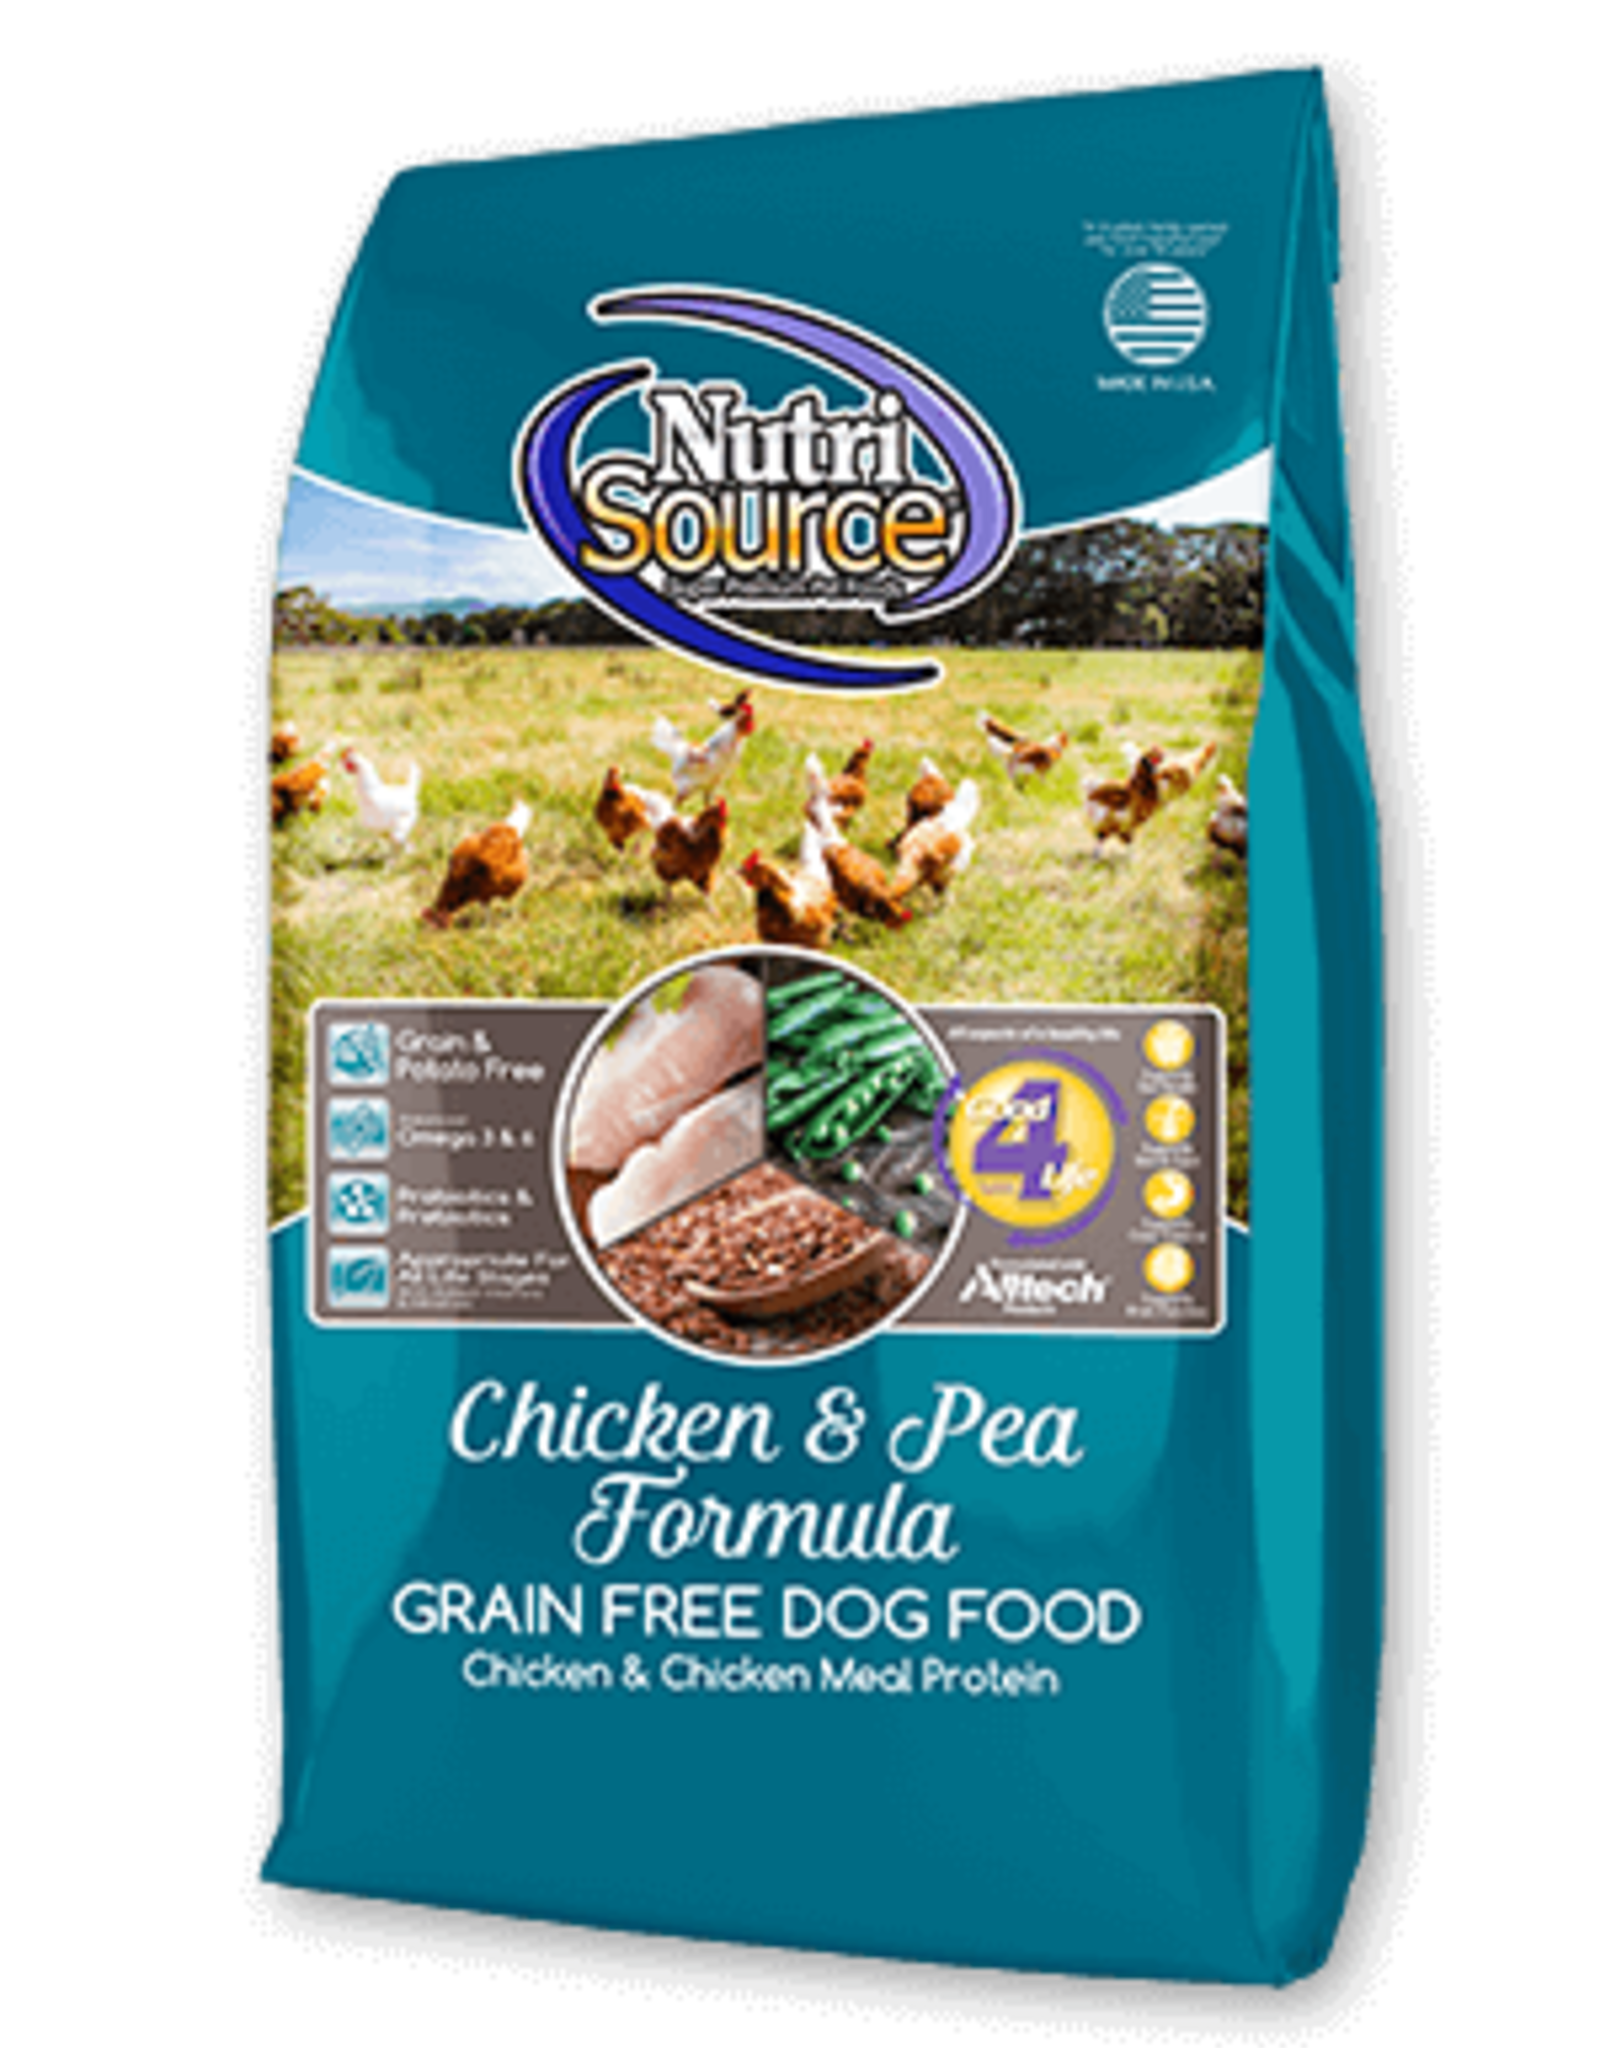 Nutrisource GF Dog Food Chicken & Pea